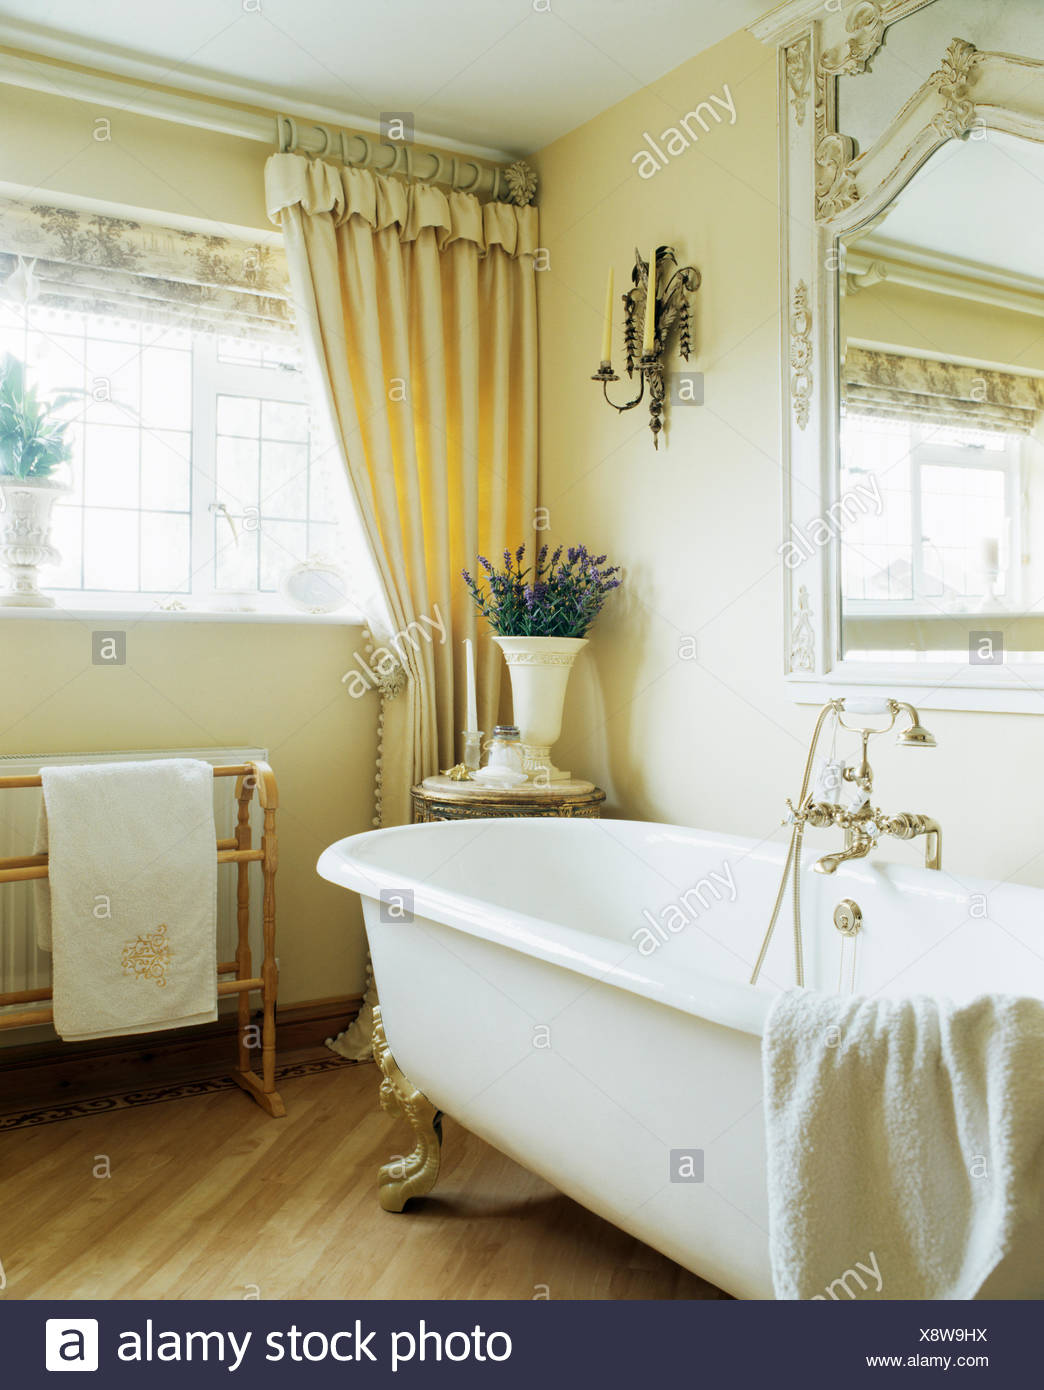 Roll Top Bath In Cream Bathroom With Cream Curtains On Window Above Heated  Towel Rail